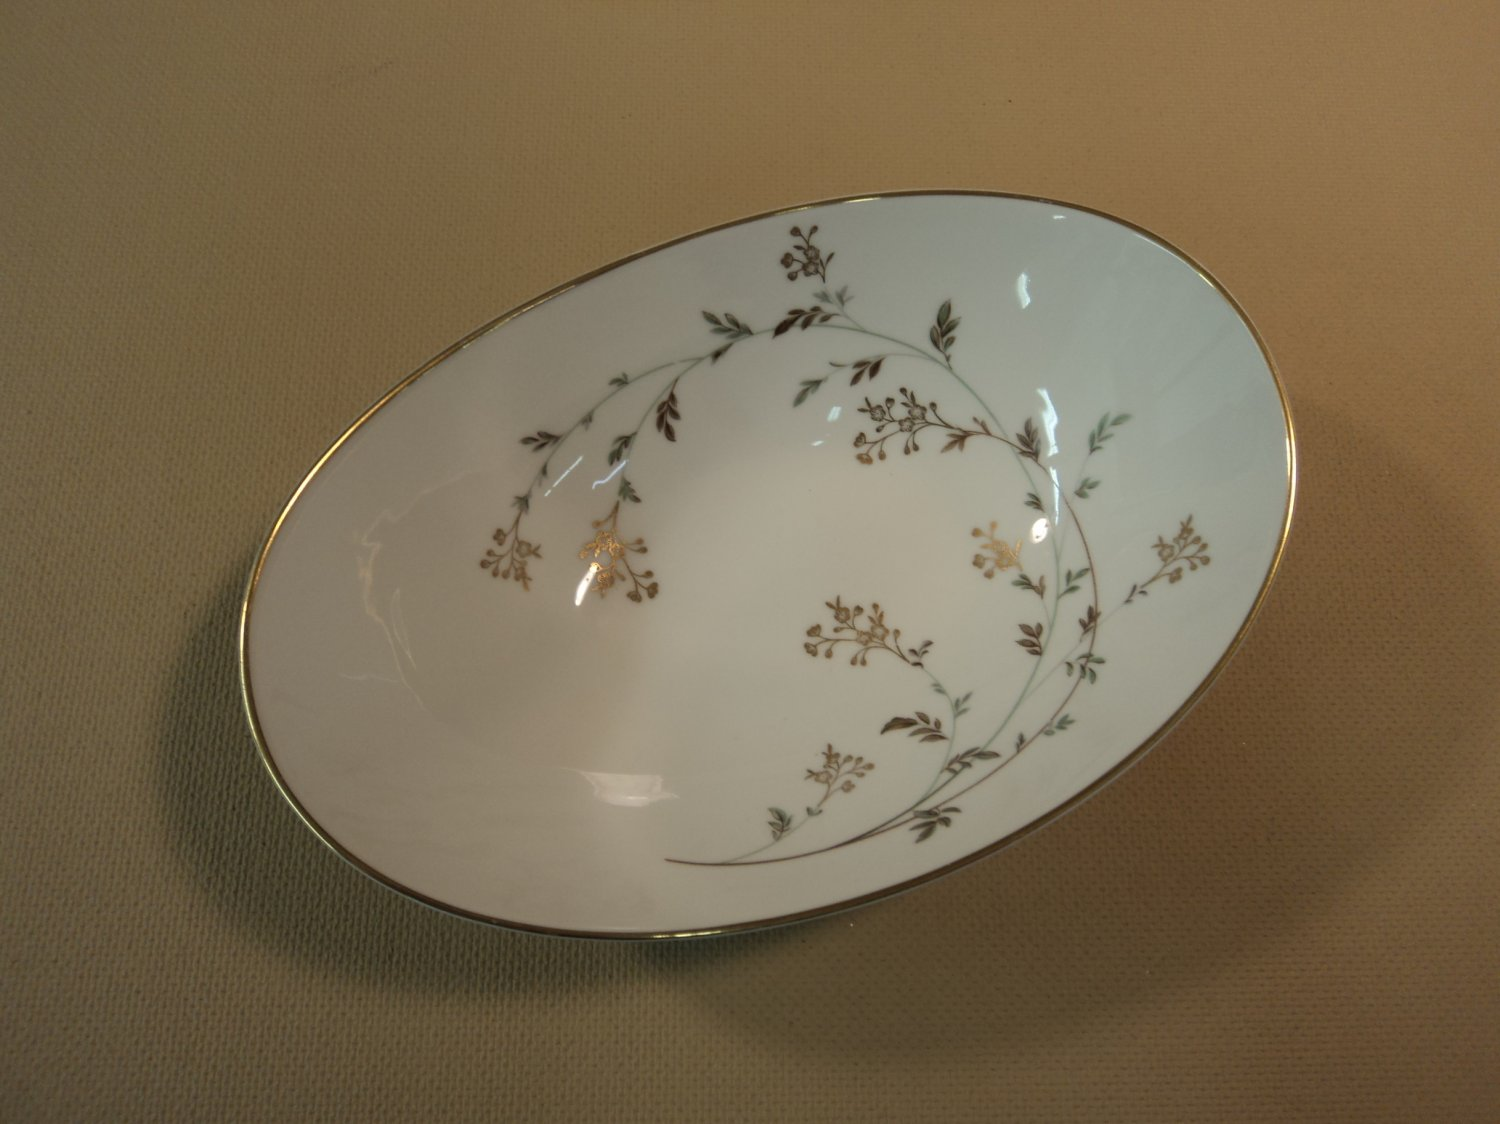 Noritake Andrea 5524 9-in Oval Vegetable White/Gray/Gold Leafs Stems China